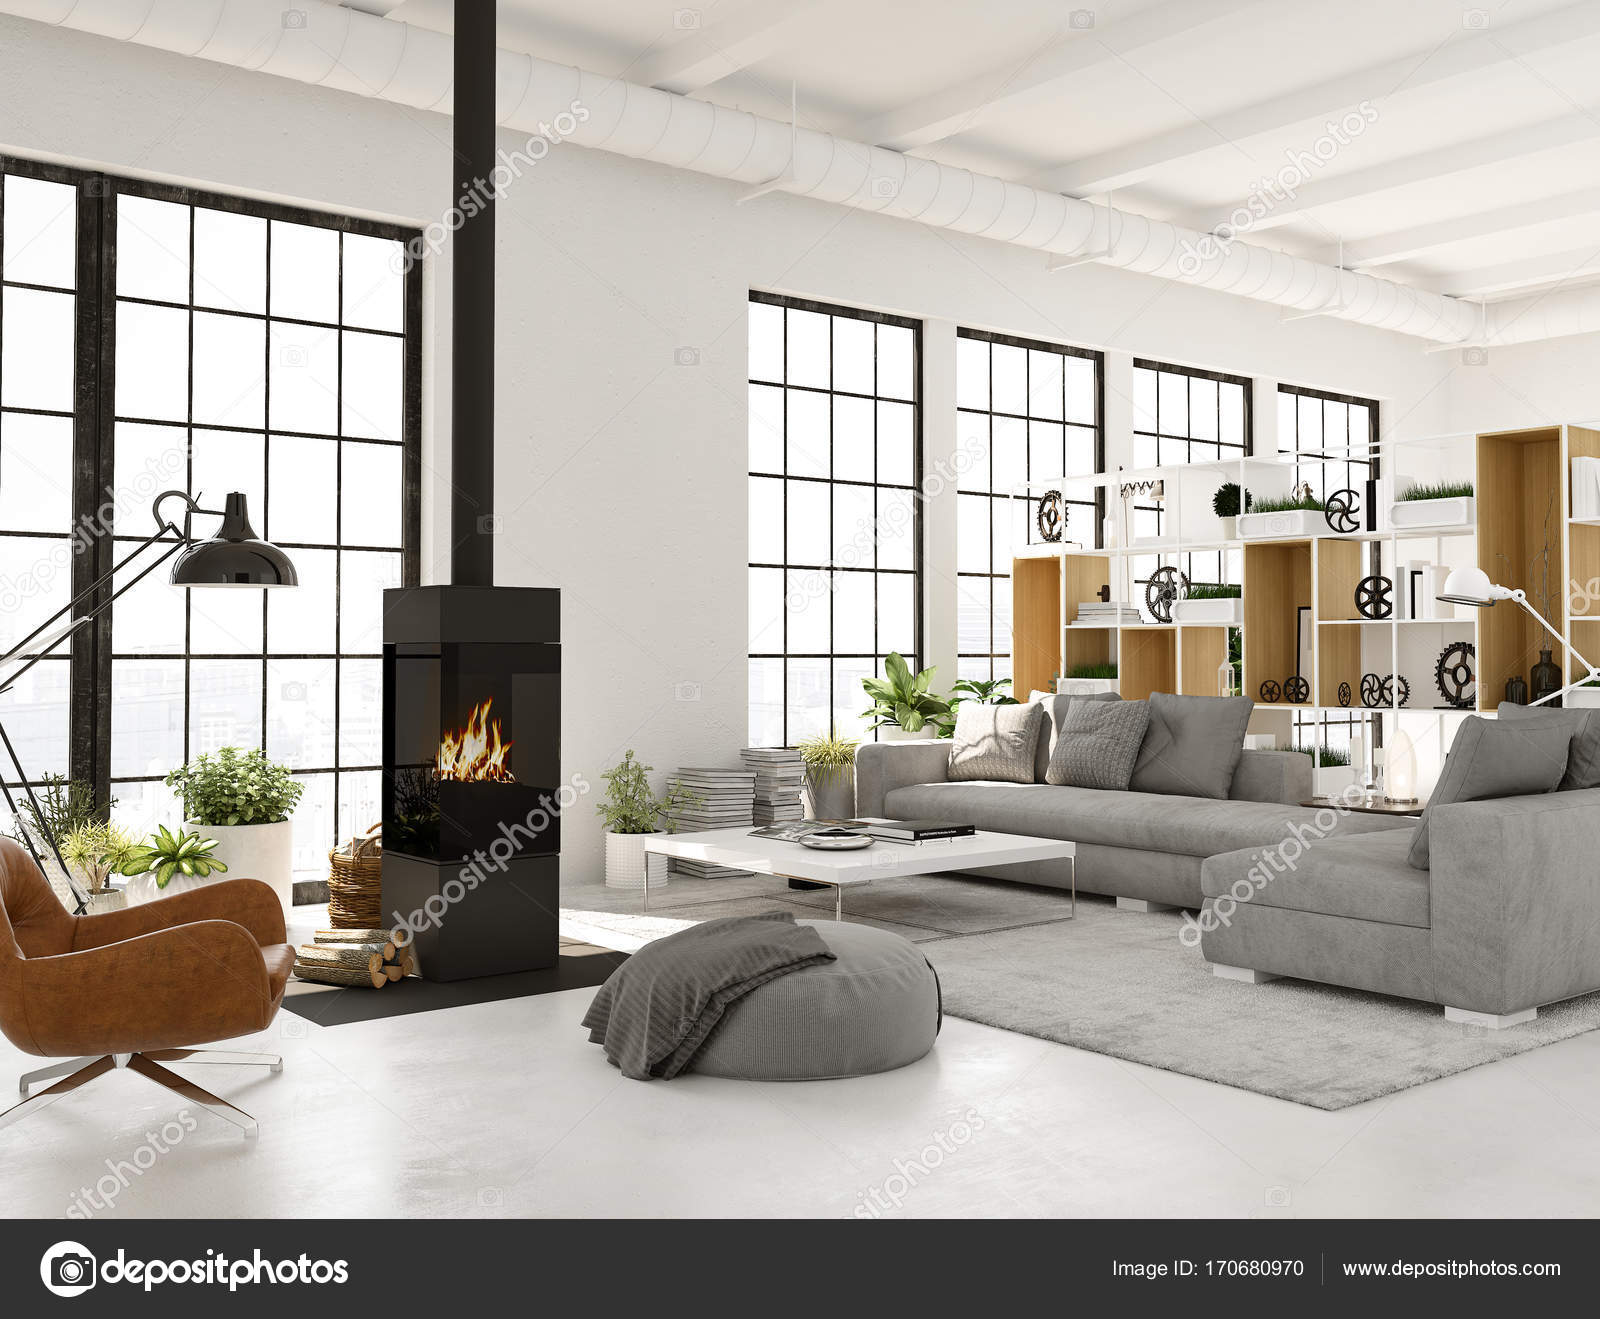 3d rendering. living room with fireplace in modern loft apartment ...